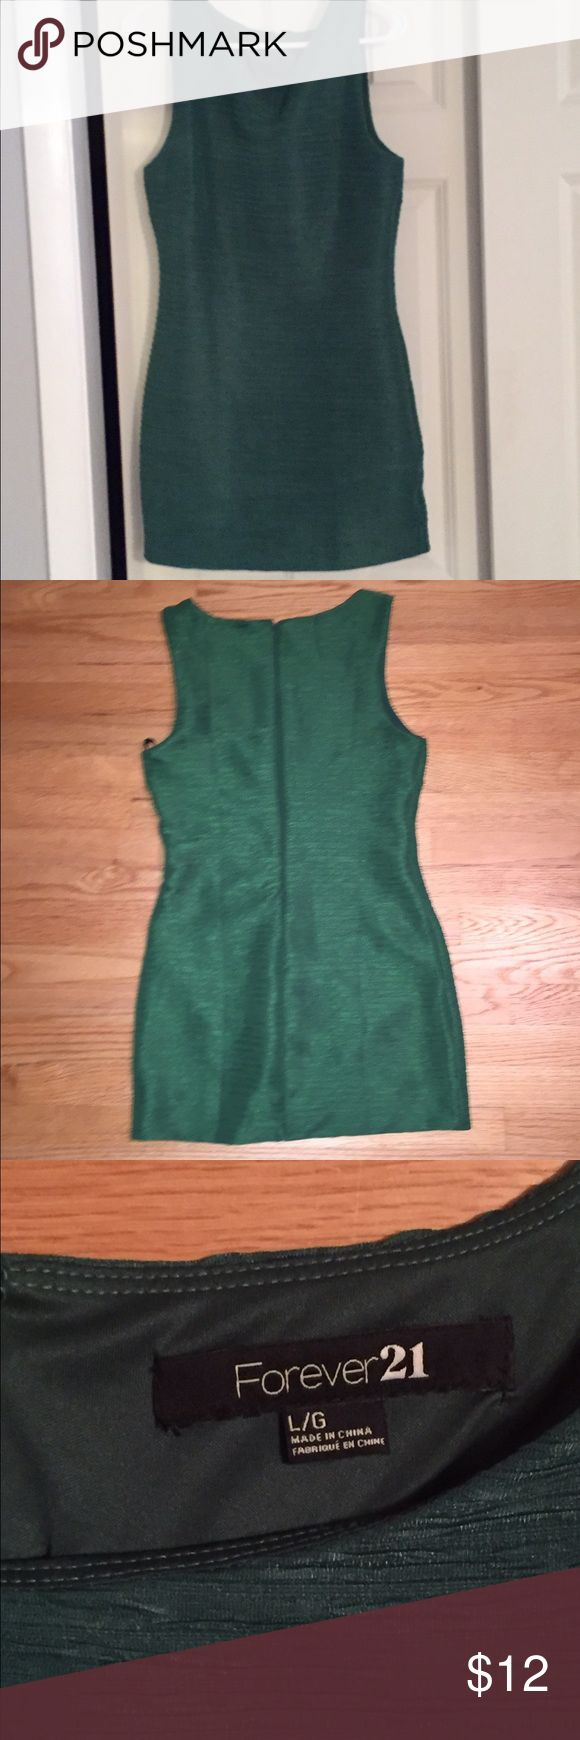 Kelly green dress Forever 21 Kelly green dress. Only worn once and great condition. Size large but fits a bit big Forever 21 Dresses Mini